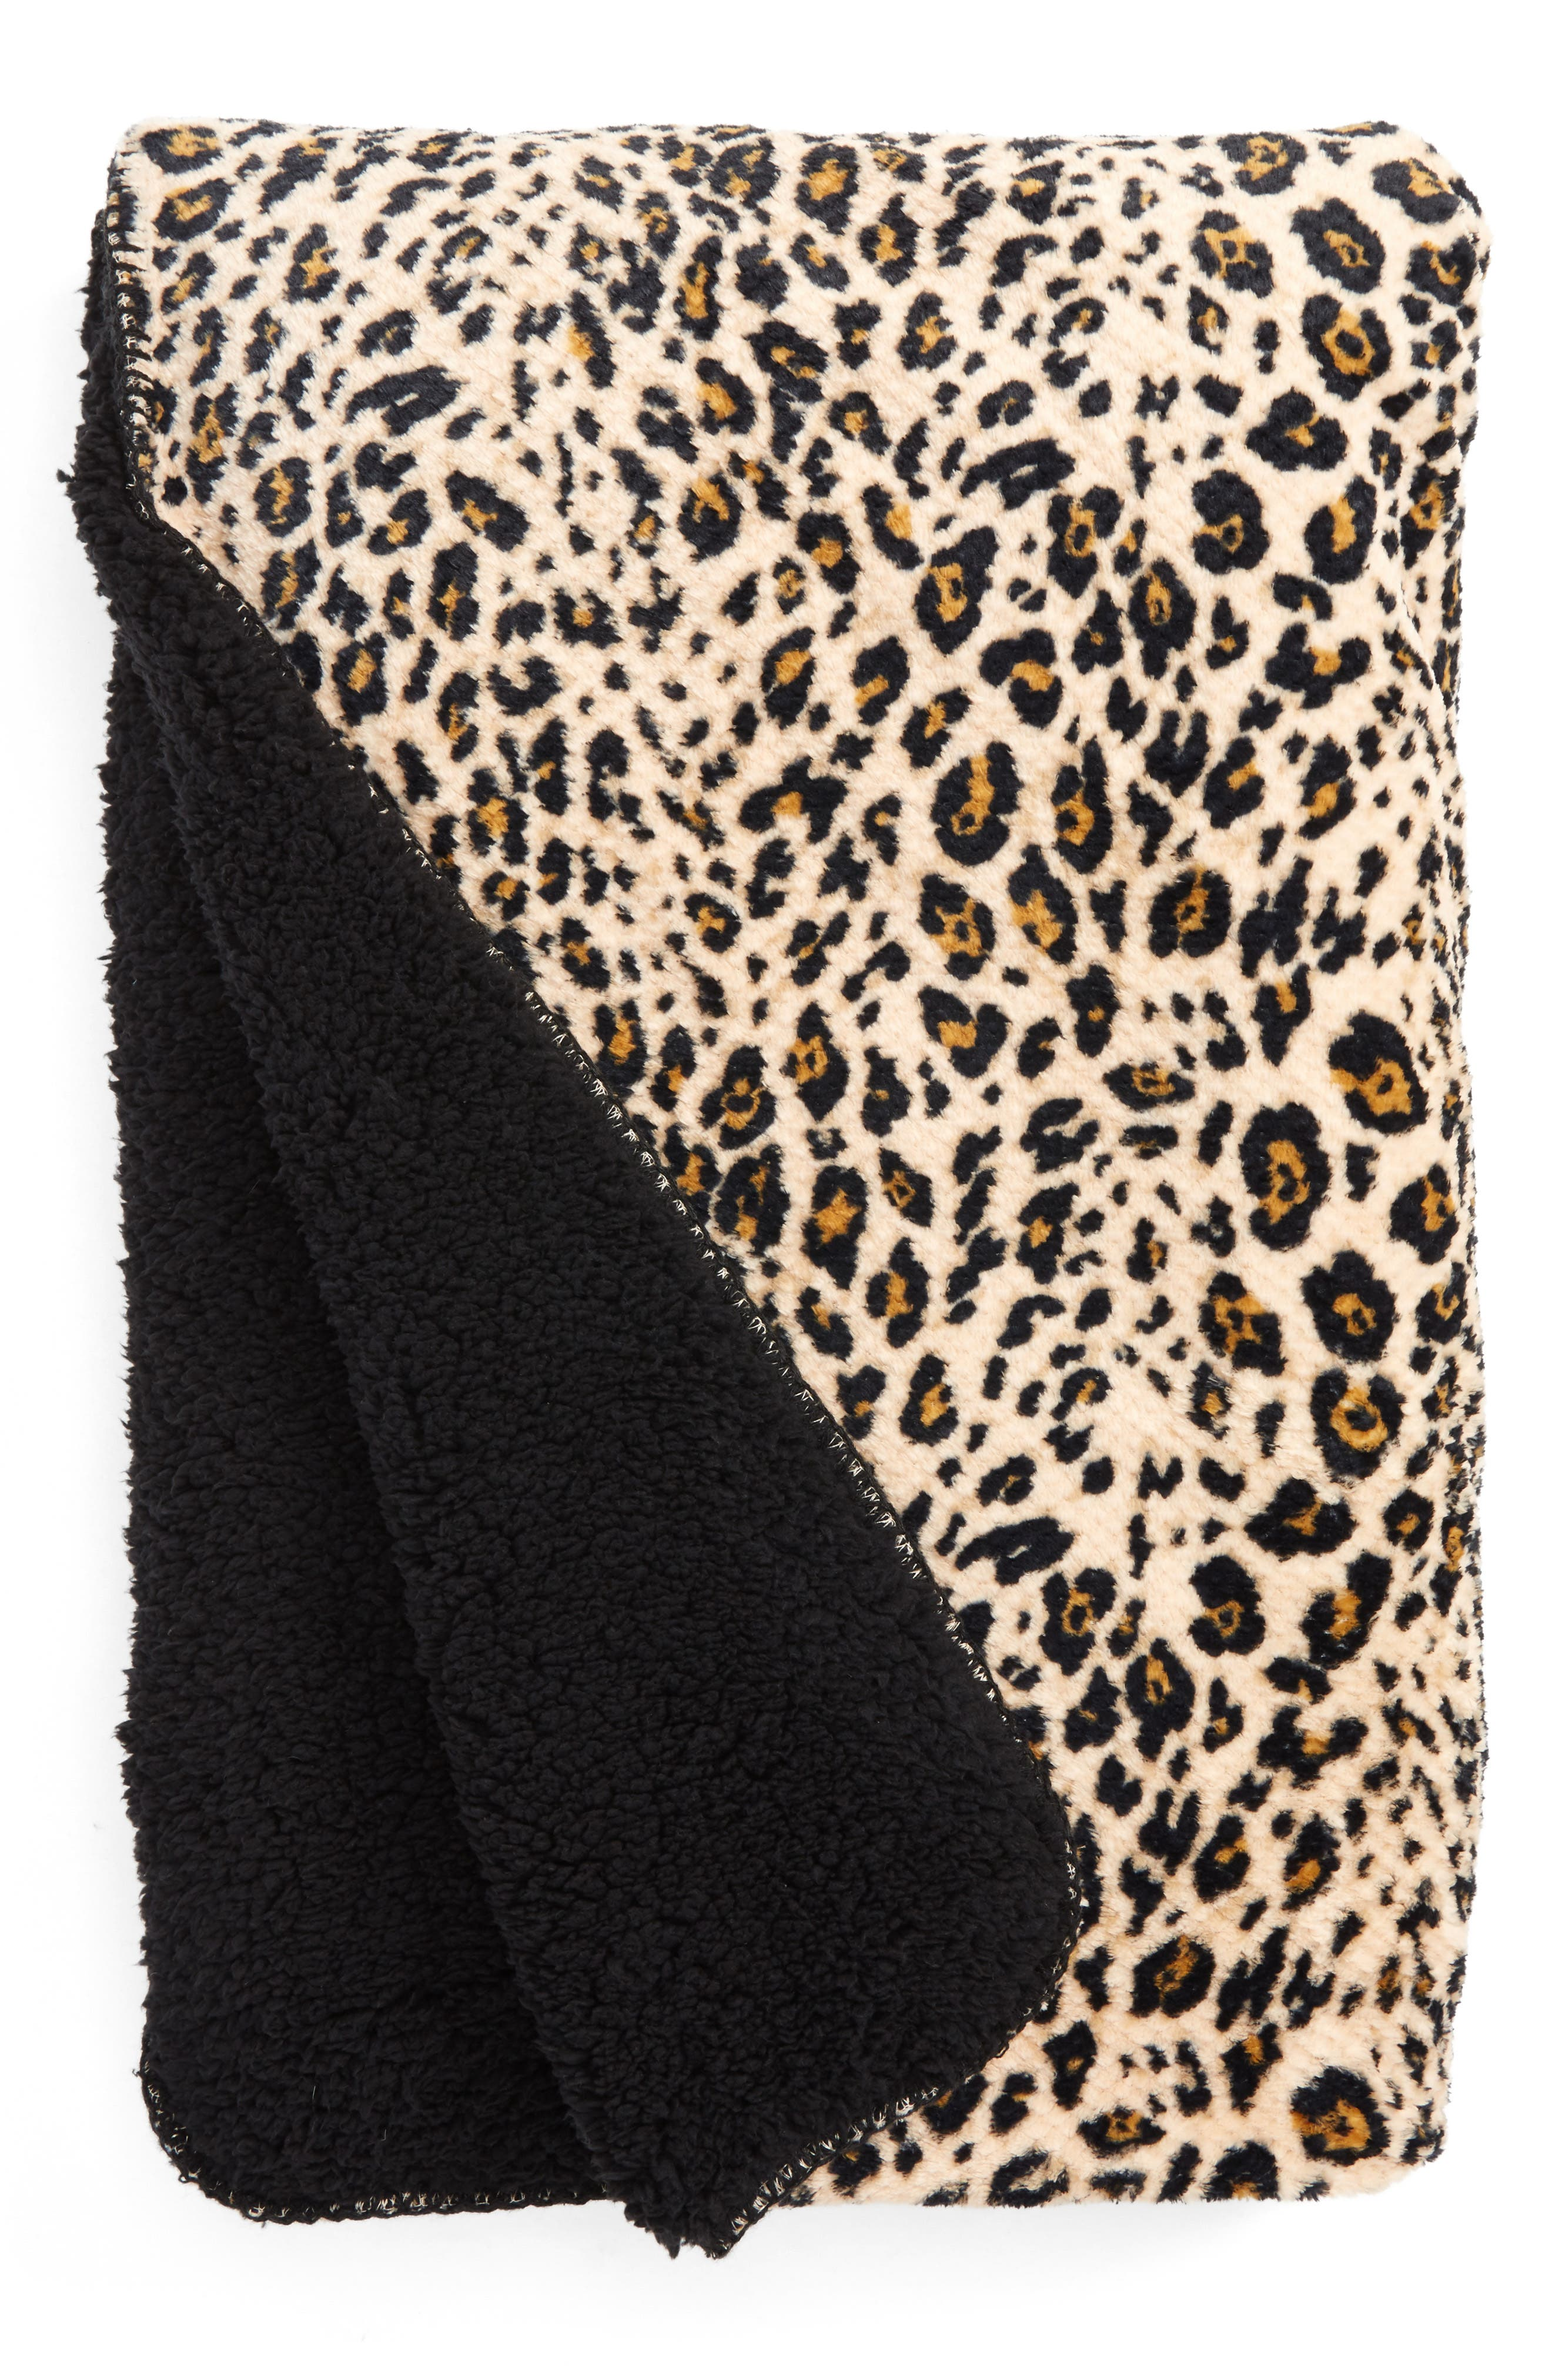 Main Image - PJ Salvage Leopard Print Faux Shearling Blanket